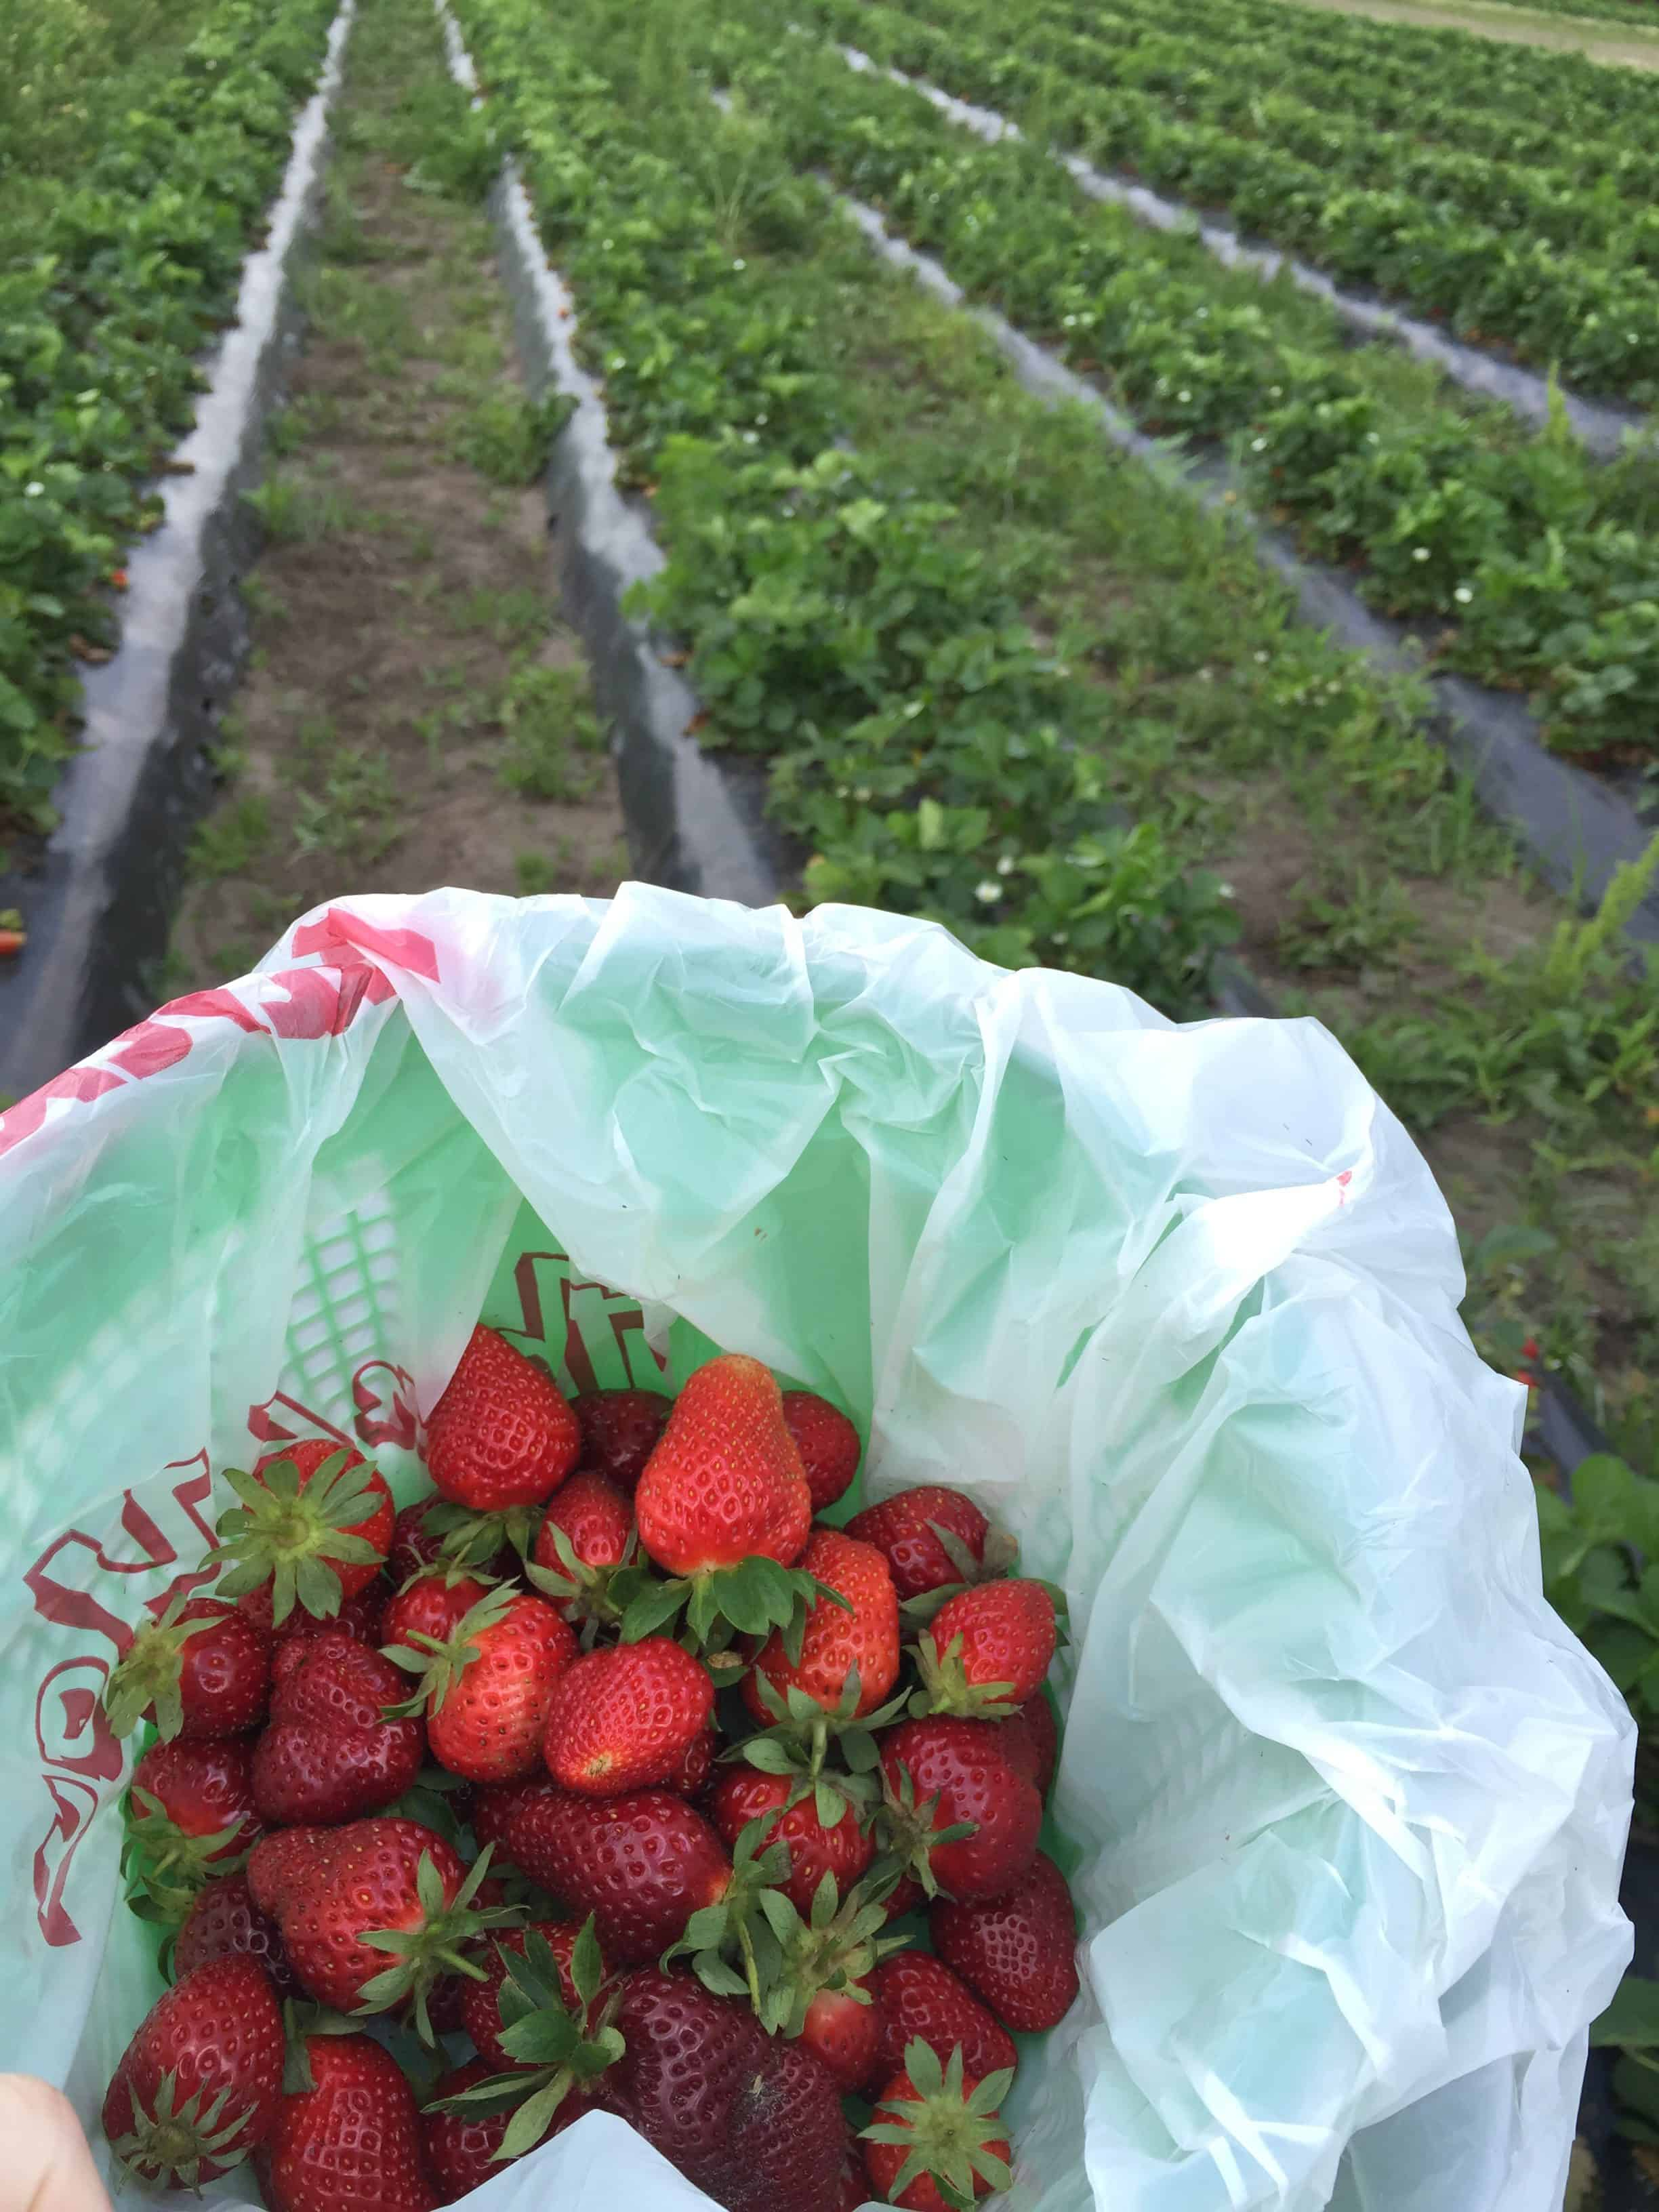 101 in 1001: Strawberry Picking (for my birthday!)